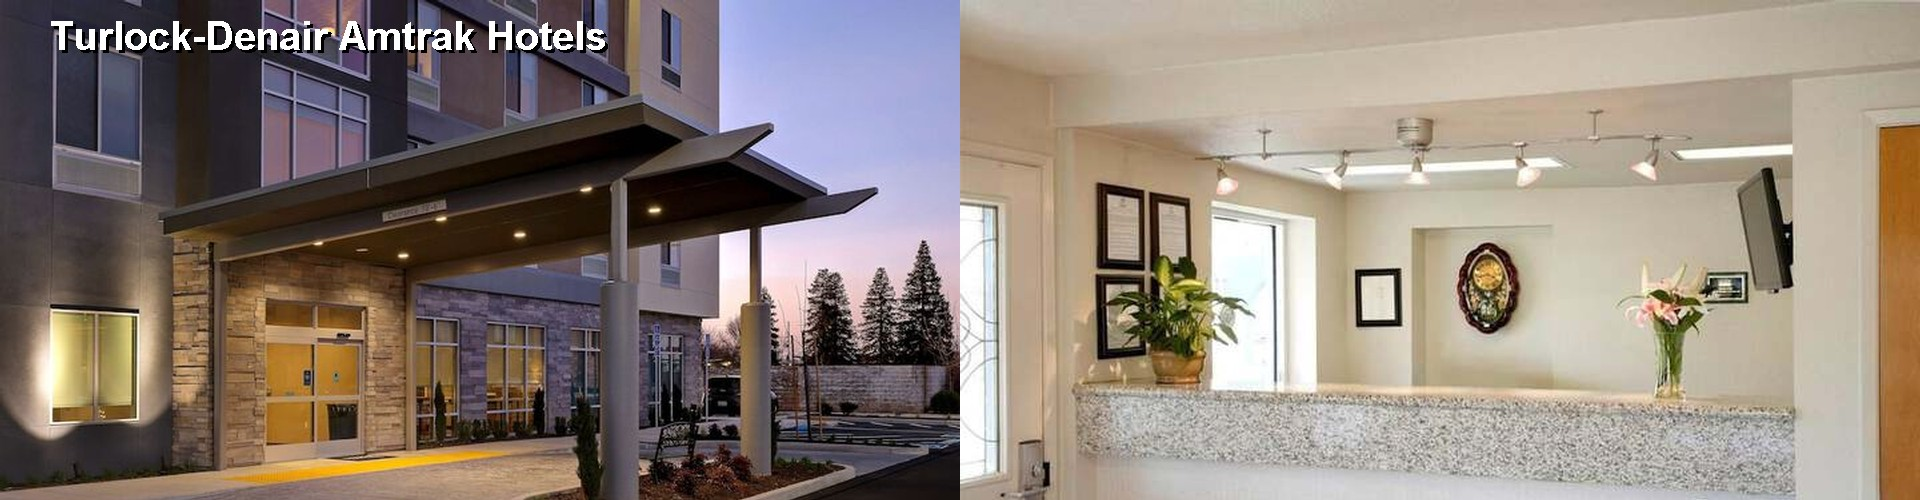 5 Best Hotels near Turlock-Denair Amtrak